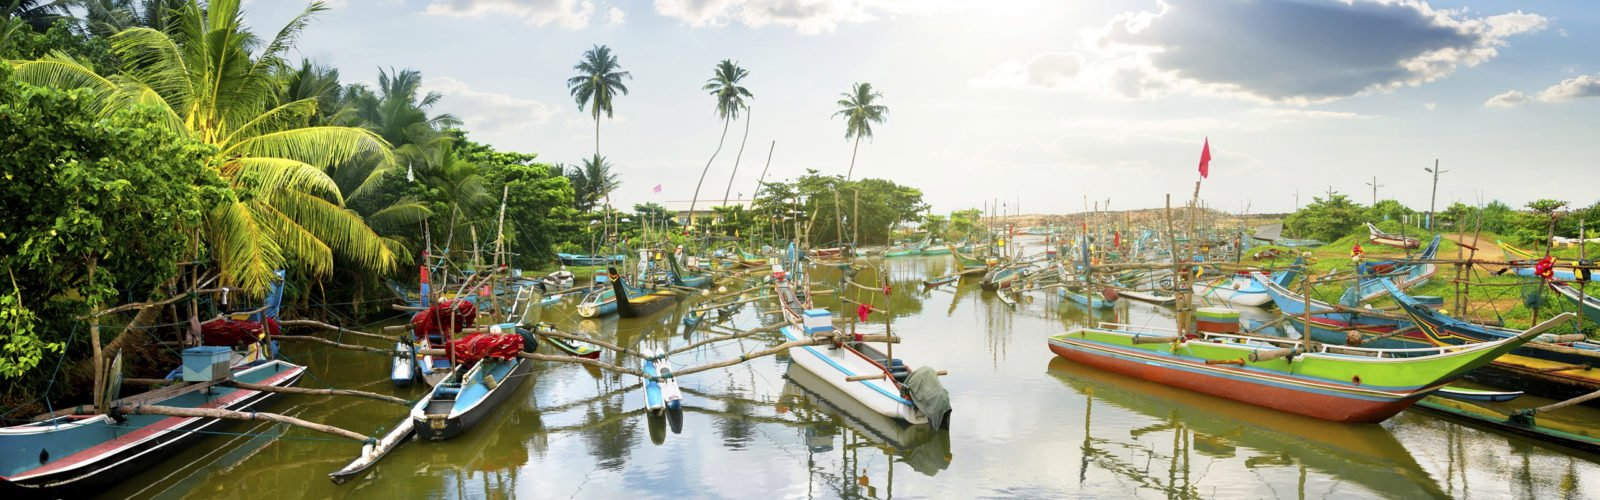 Galle_fishing_boats